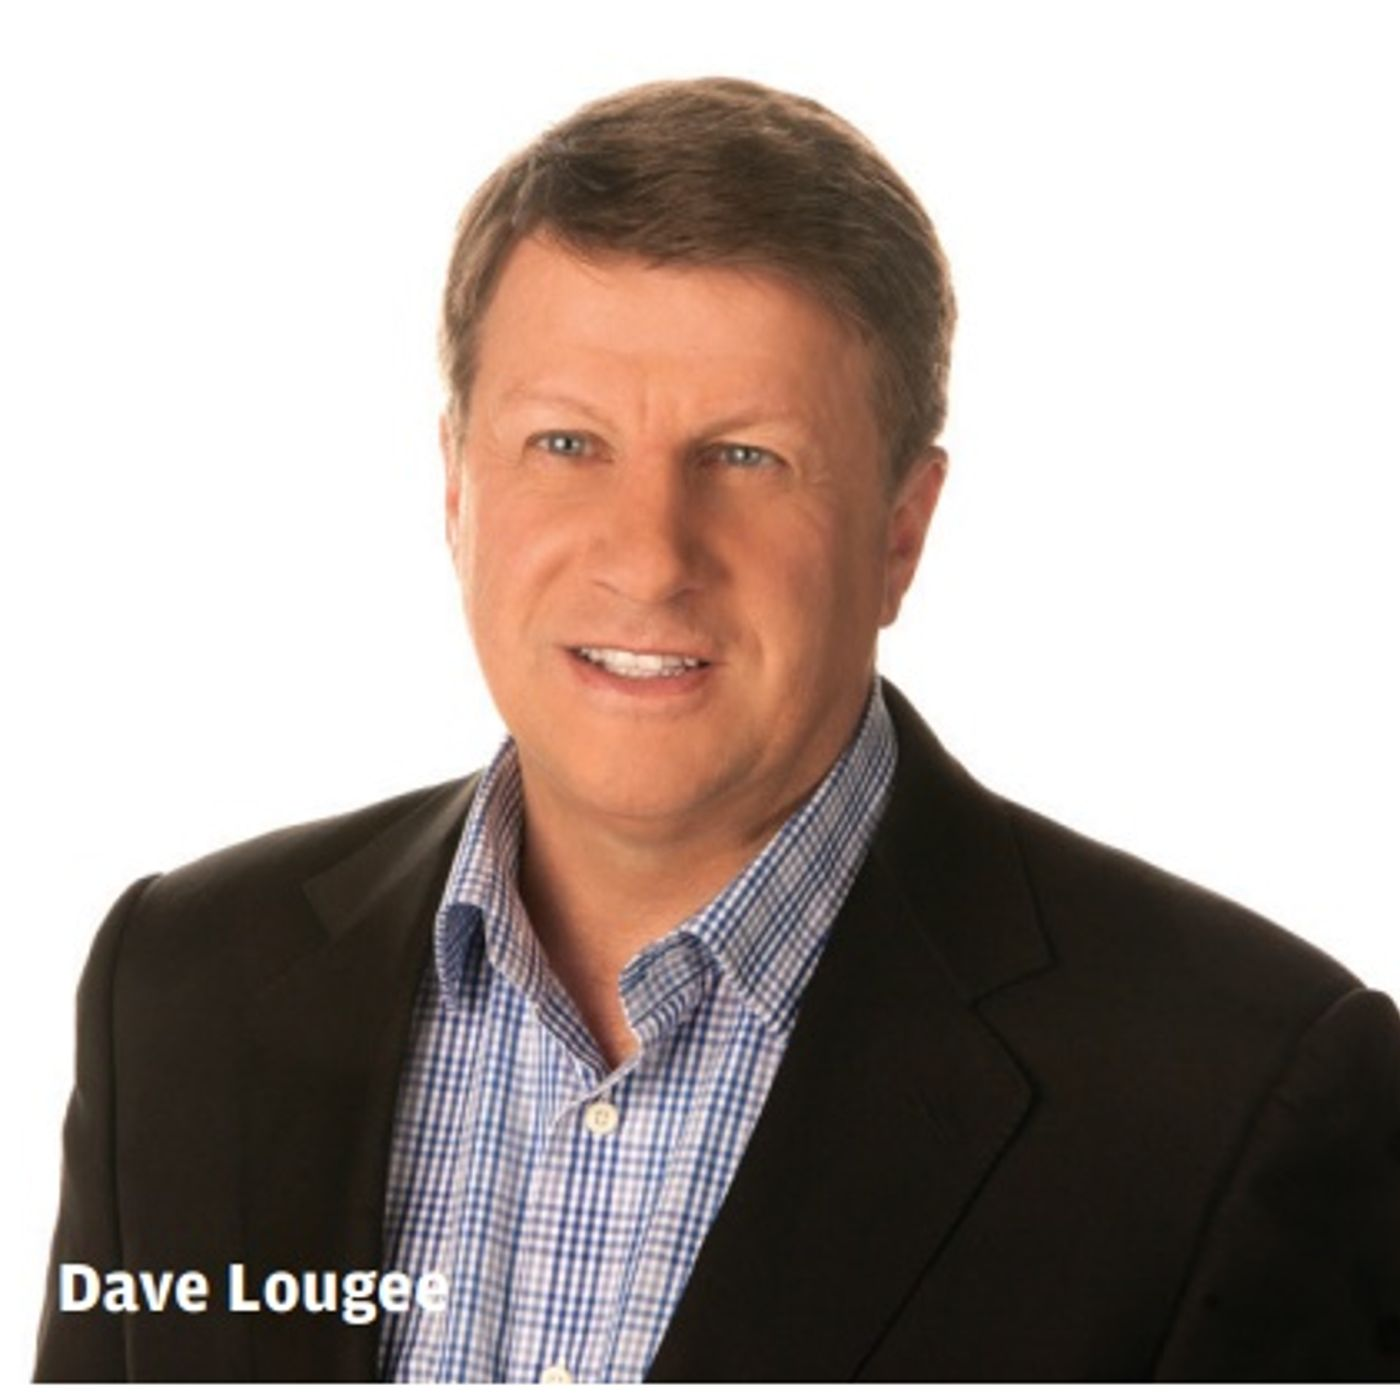 The InFOCUS Podcast: Dave Lougee and TEGNA's Q2 Call